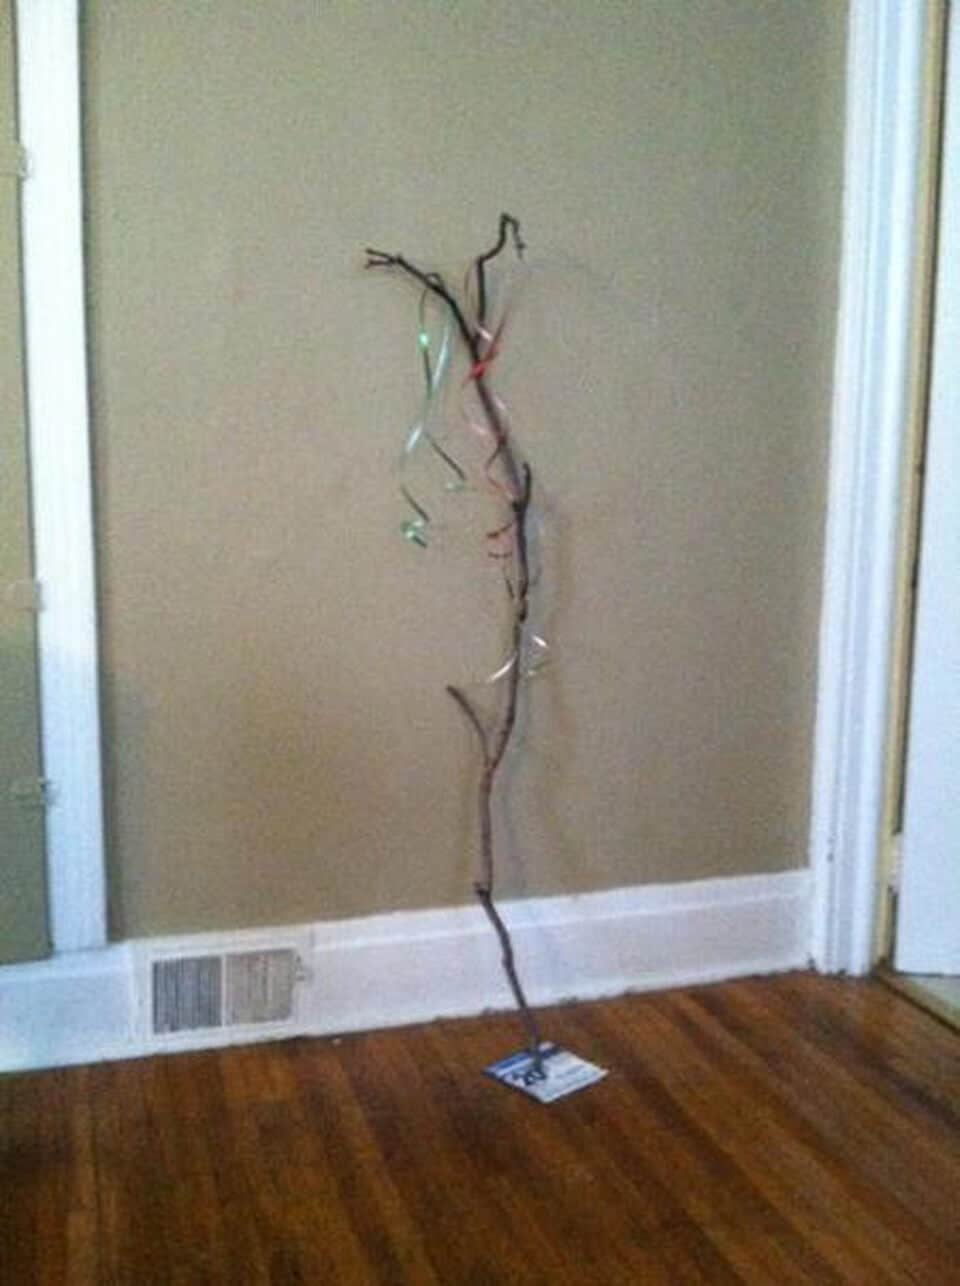 ghetto-christmas-tree-stick-1.86574195 (1)